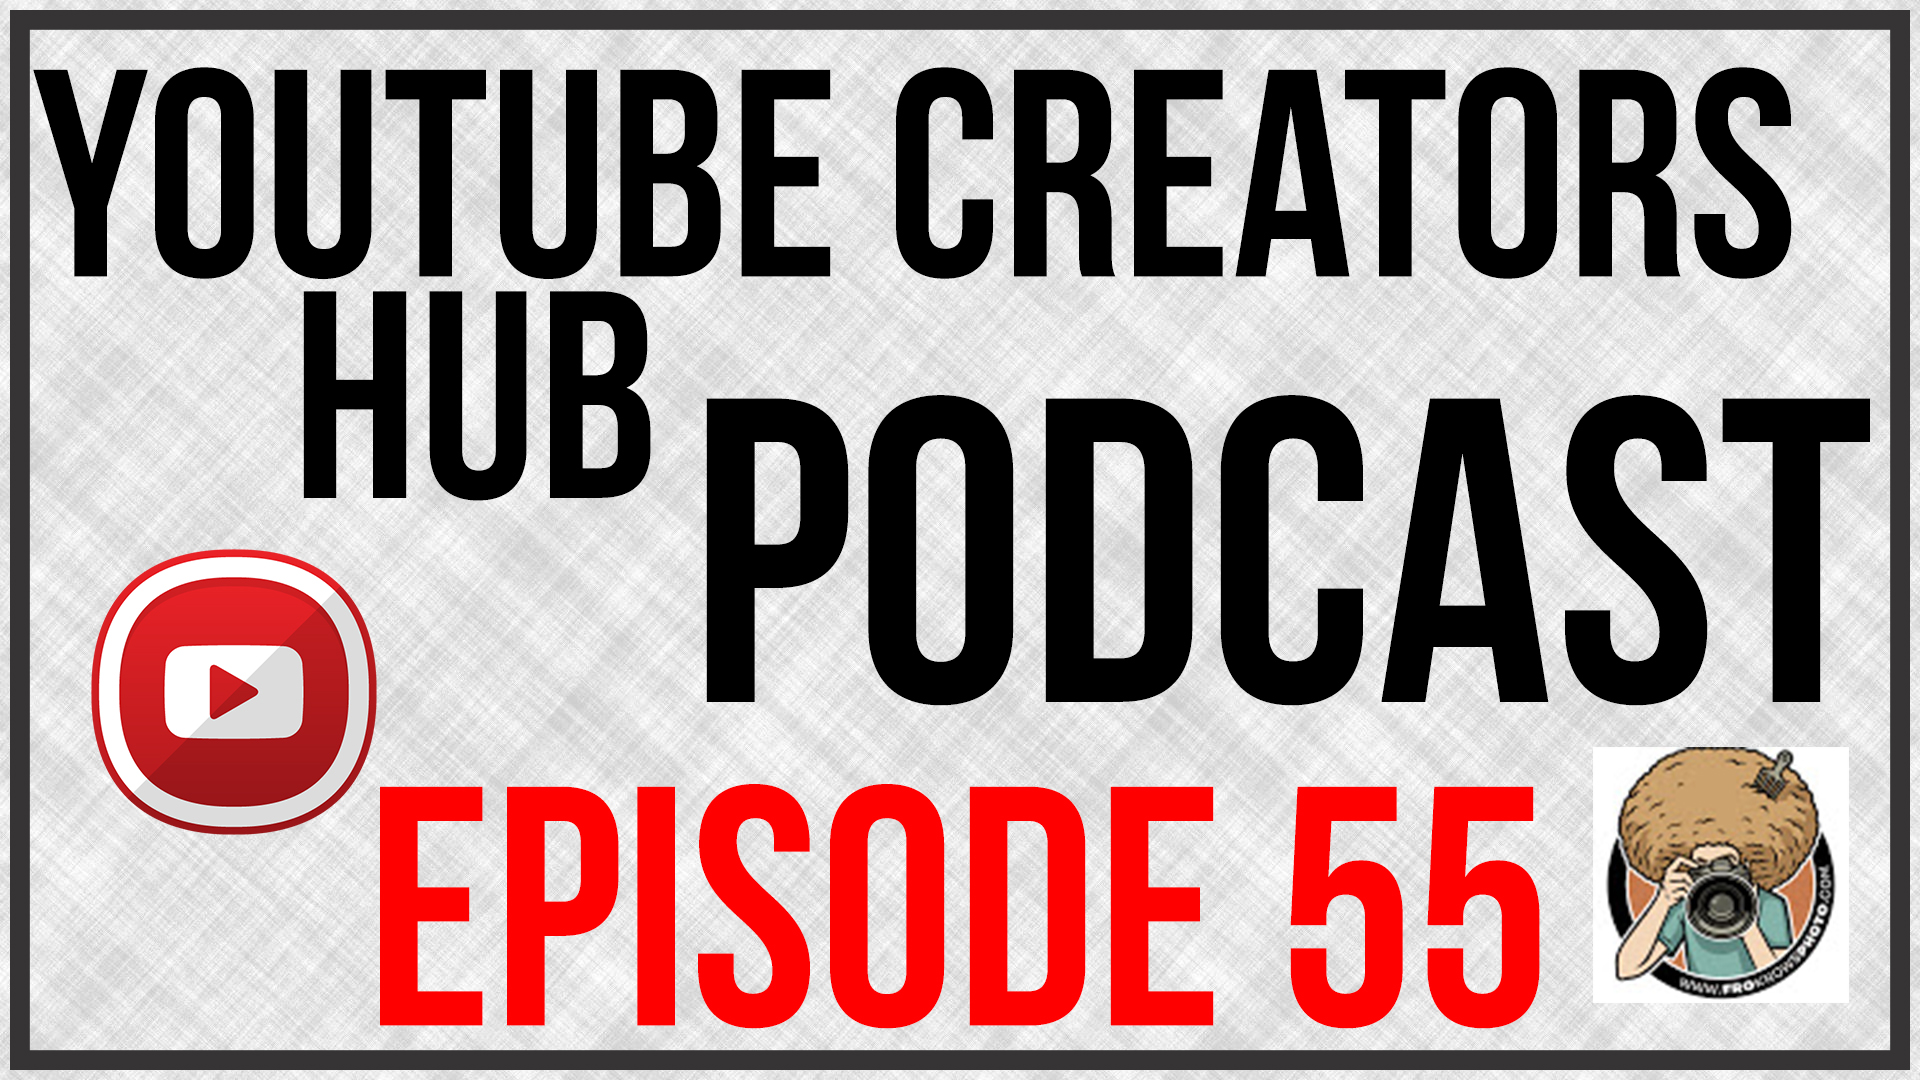 YouTube Creators Hub Podcast Episode 55